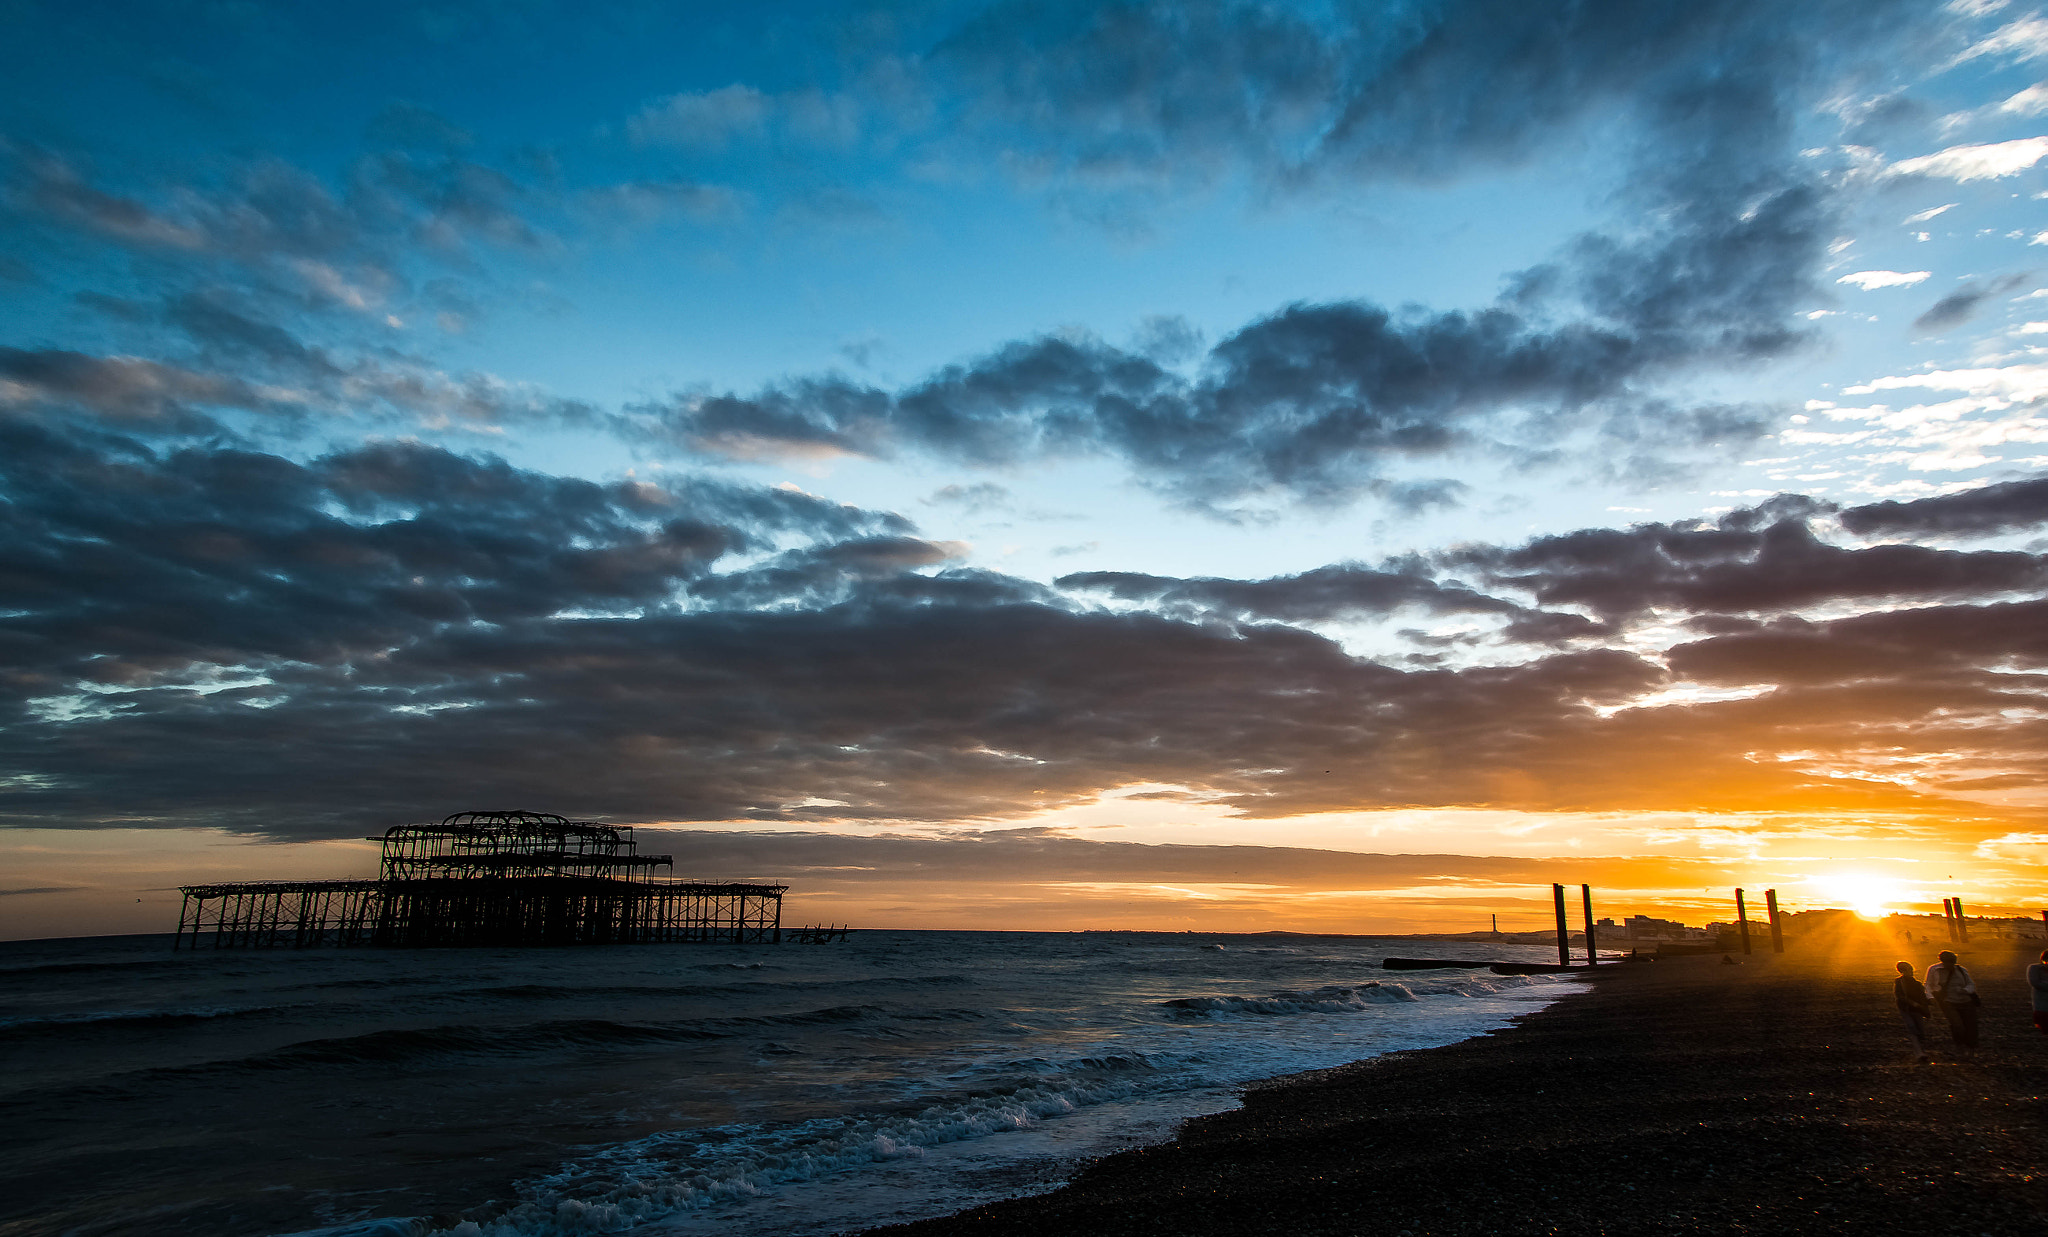 Photograph The West Pier at Sunset, Brighton by julian john on 500px